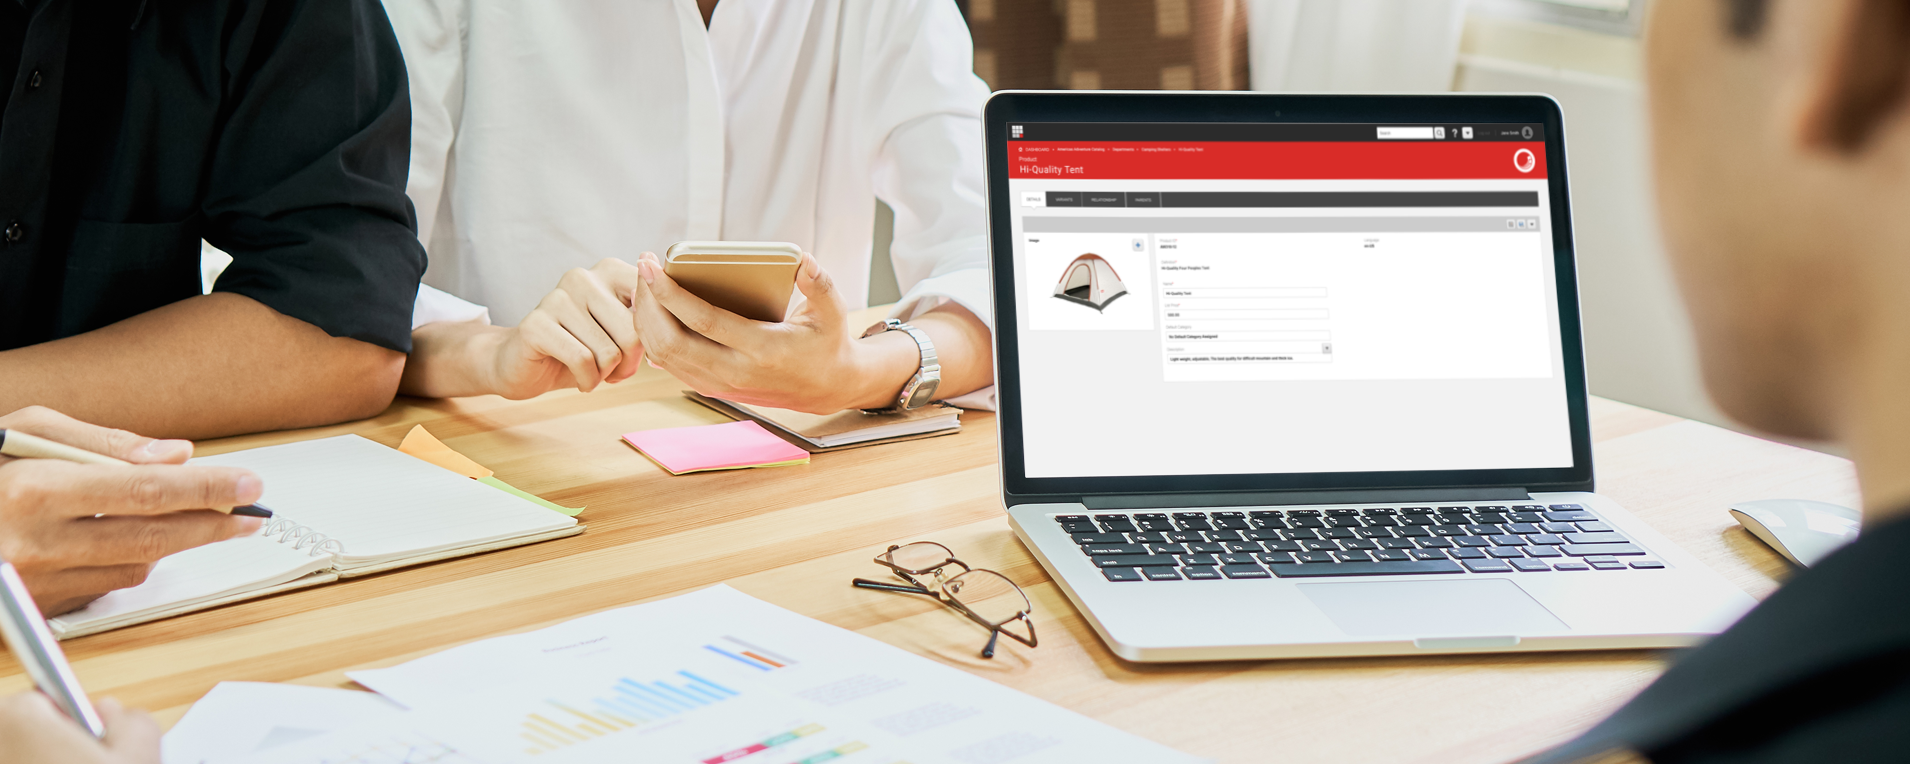 Why Should You Take a Close Look At Sitecore Commerce?